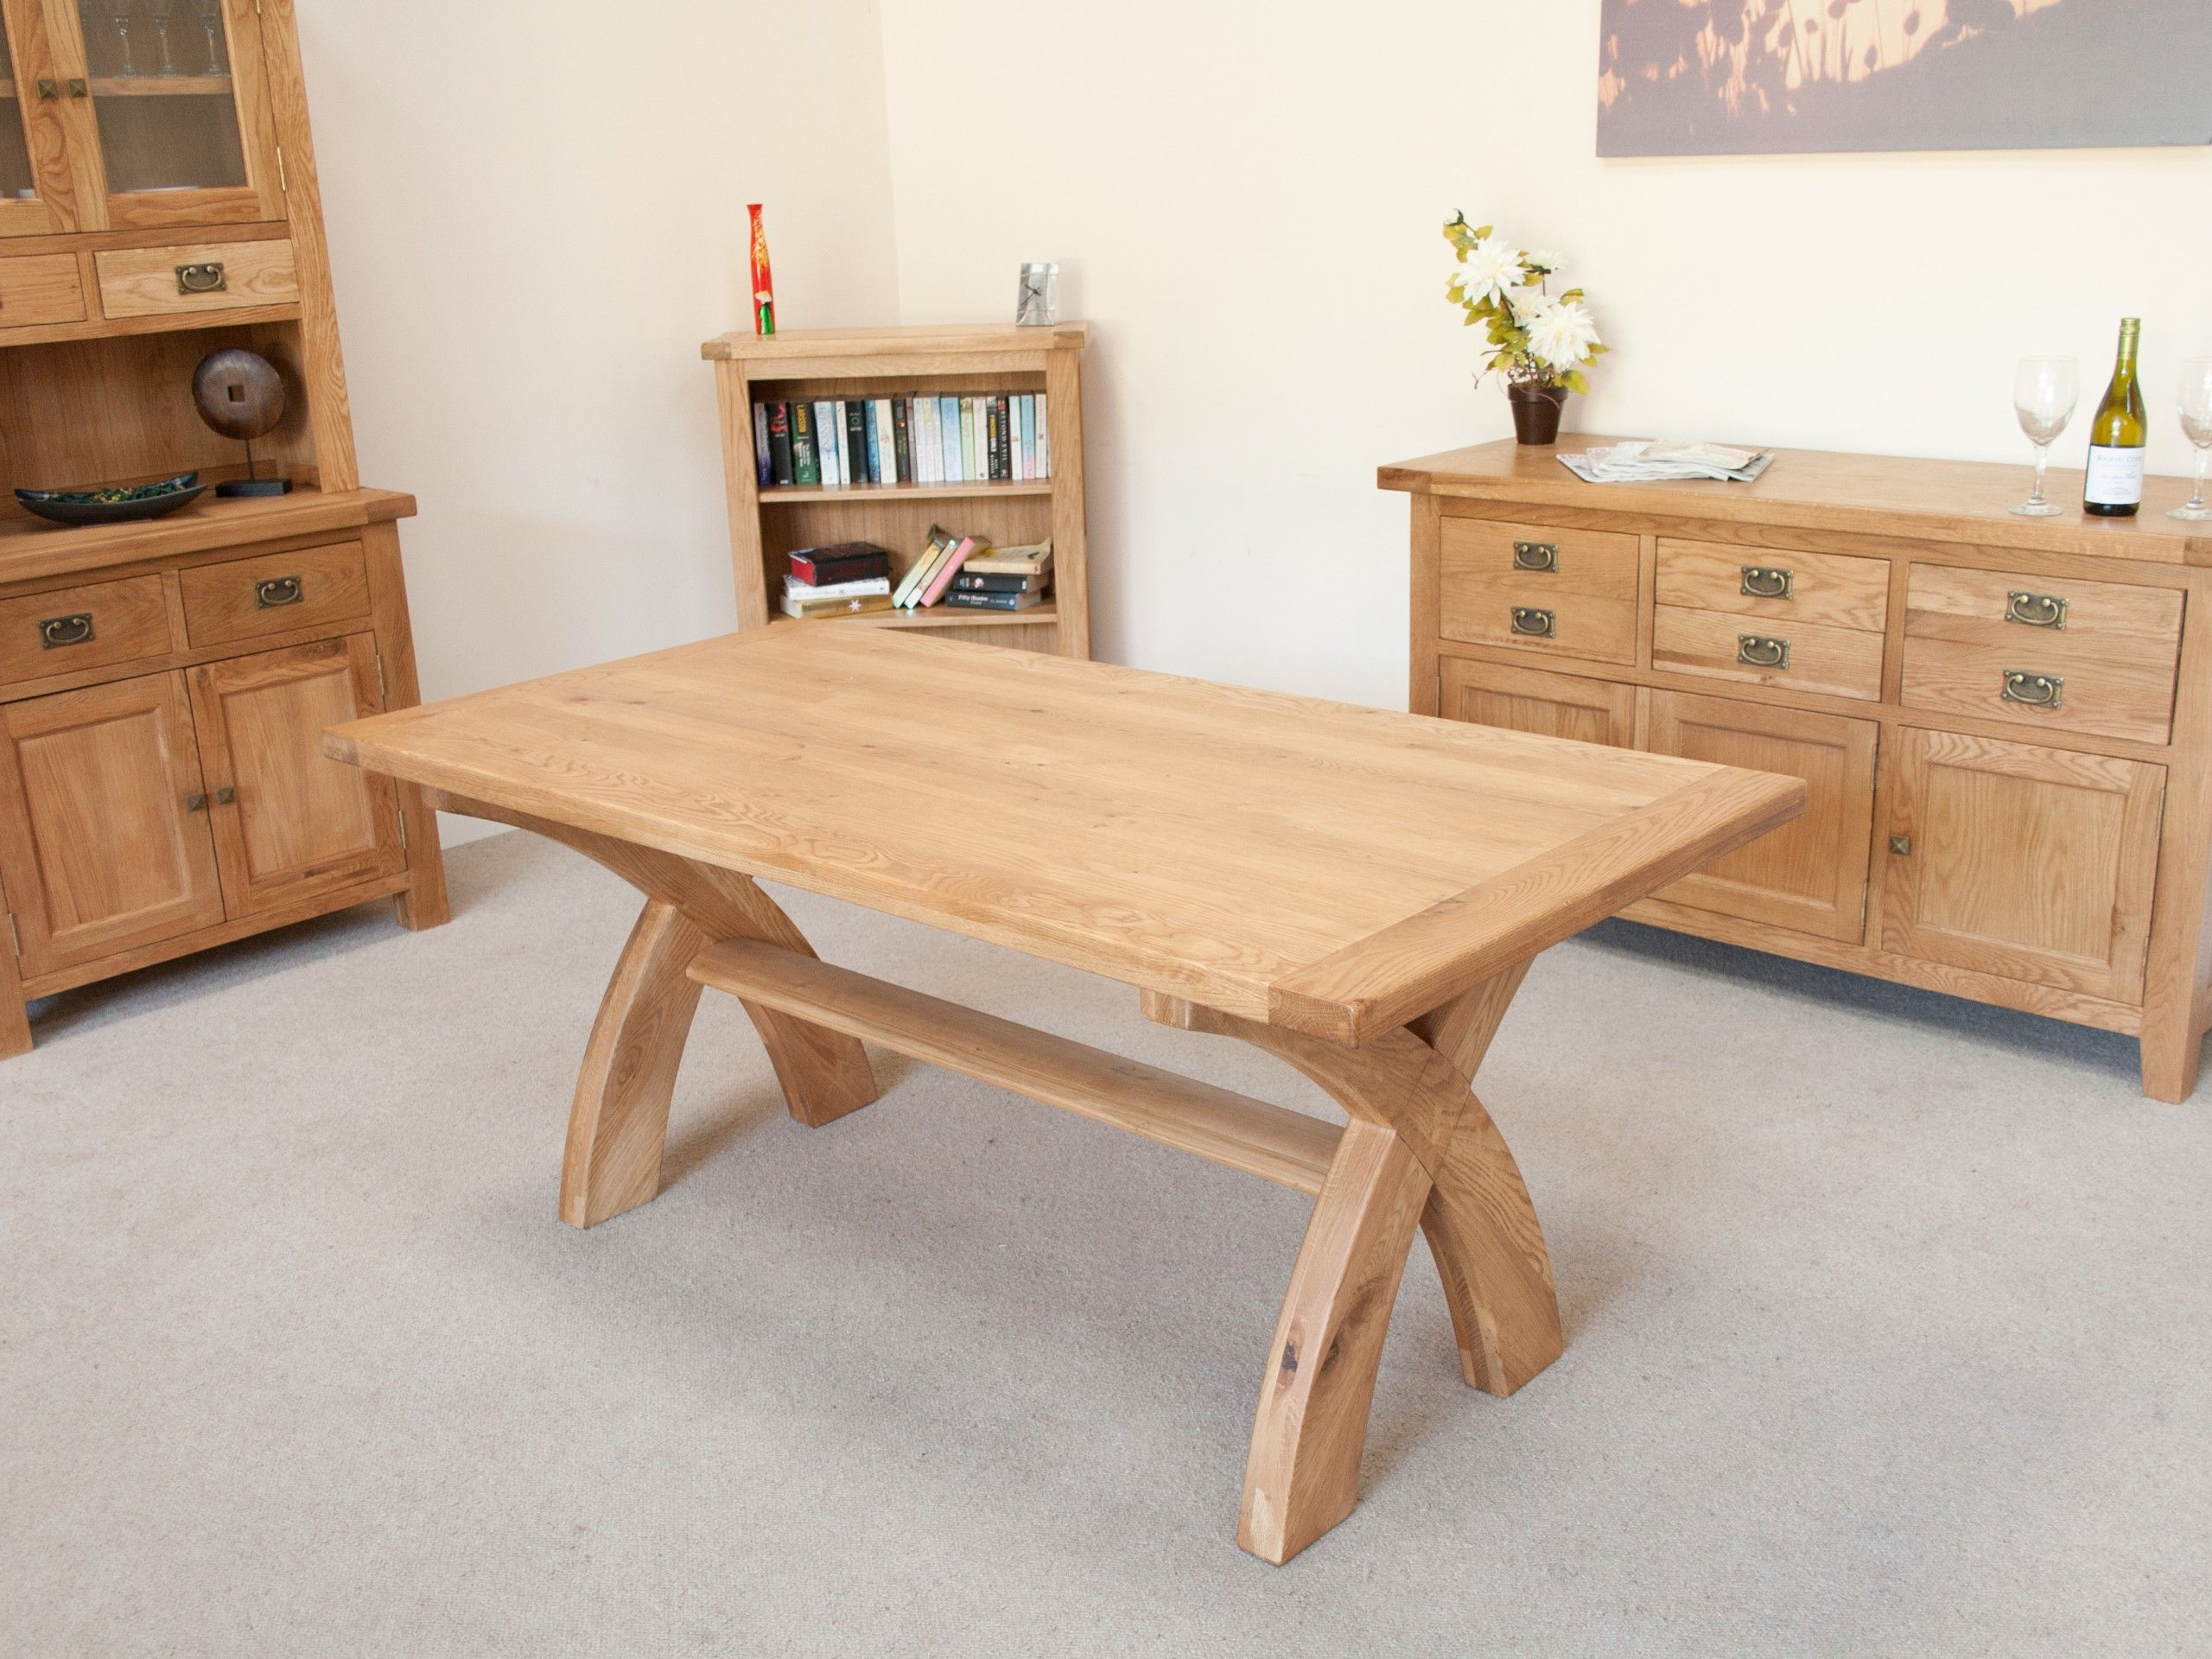 1.8m Country Oak Cross Leg Dining Table | 8 Seater Cross Leg Table ...